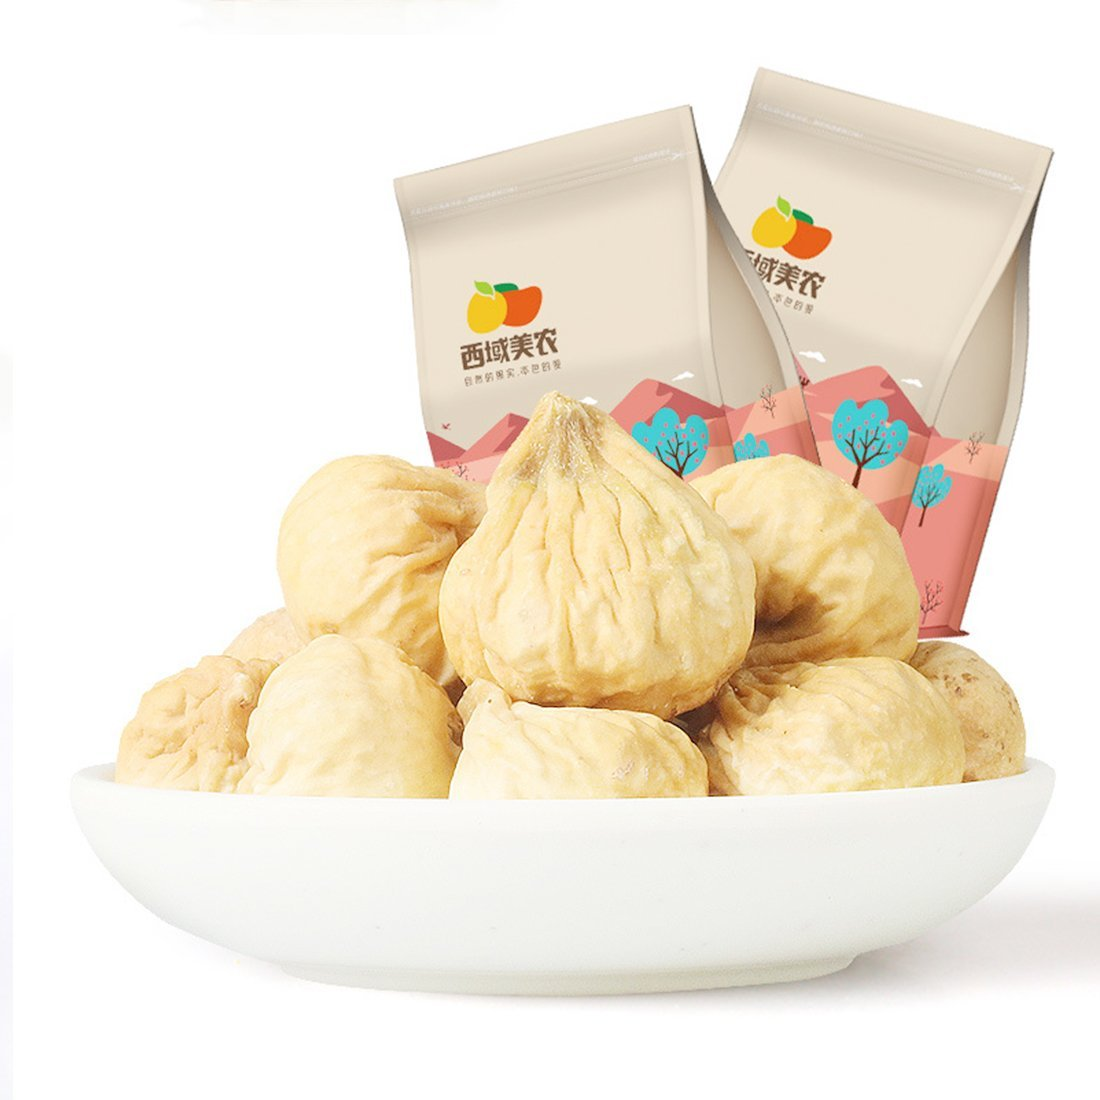 Dried Turkish Figs in Reseal Able Bag,500g(Pack of 2) by Babymate (Image #1)